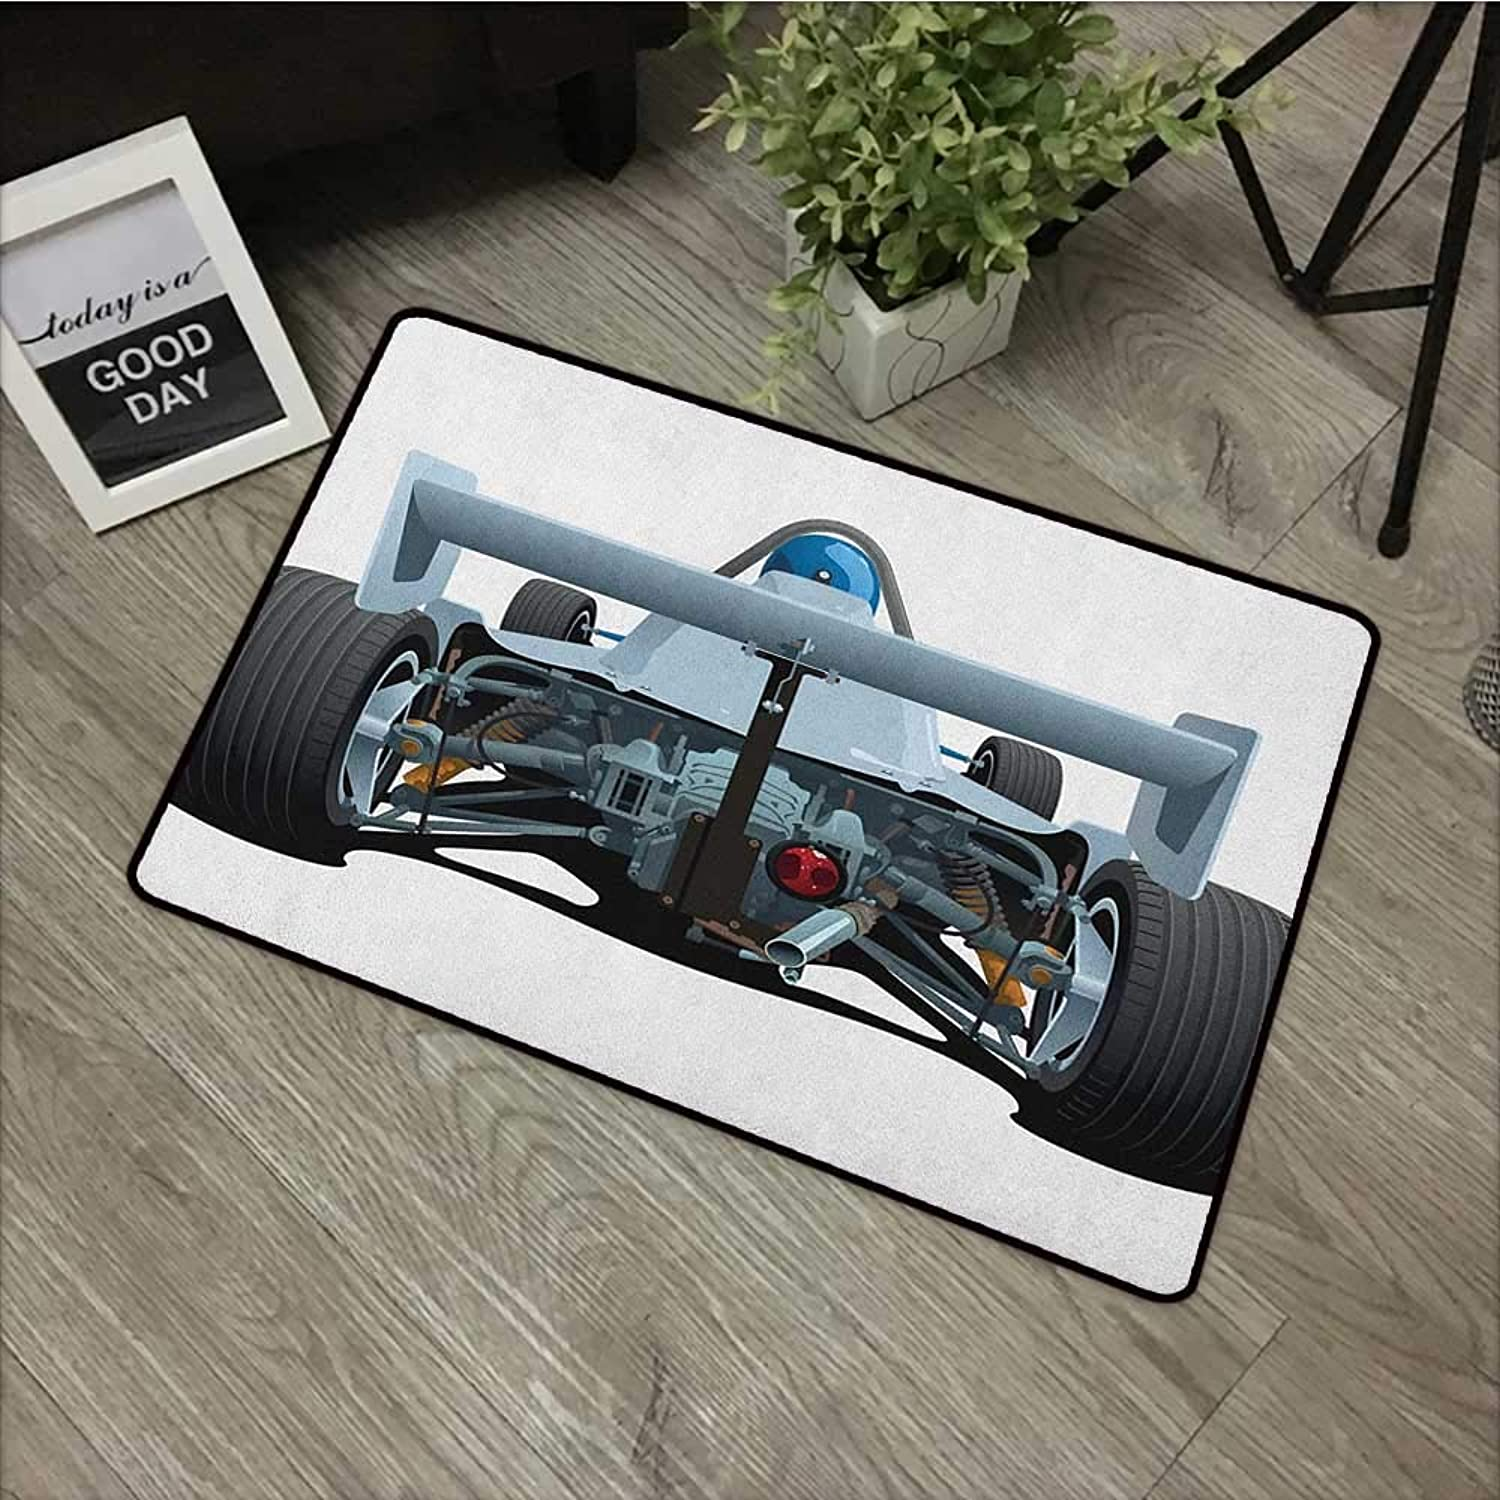 Bathroom Door mat W31 x L47 INCH Cars,Back View of a Formula 1 Race Car Rally Competition Sports Cartoon Style, blueegrey Black White Easy to Clean, no Deformation, no Fading Non-Slip Door Mat Carpet